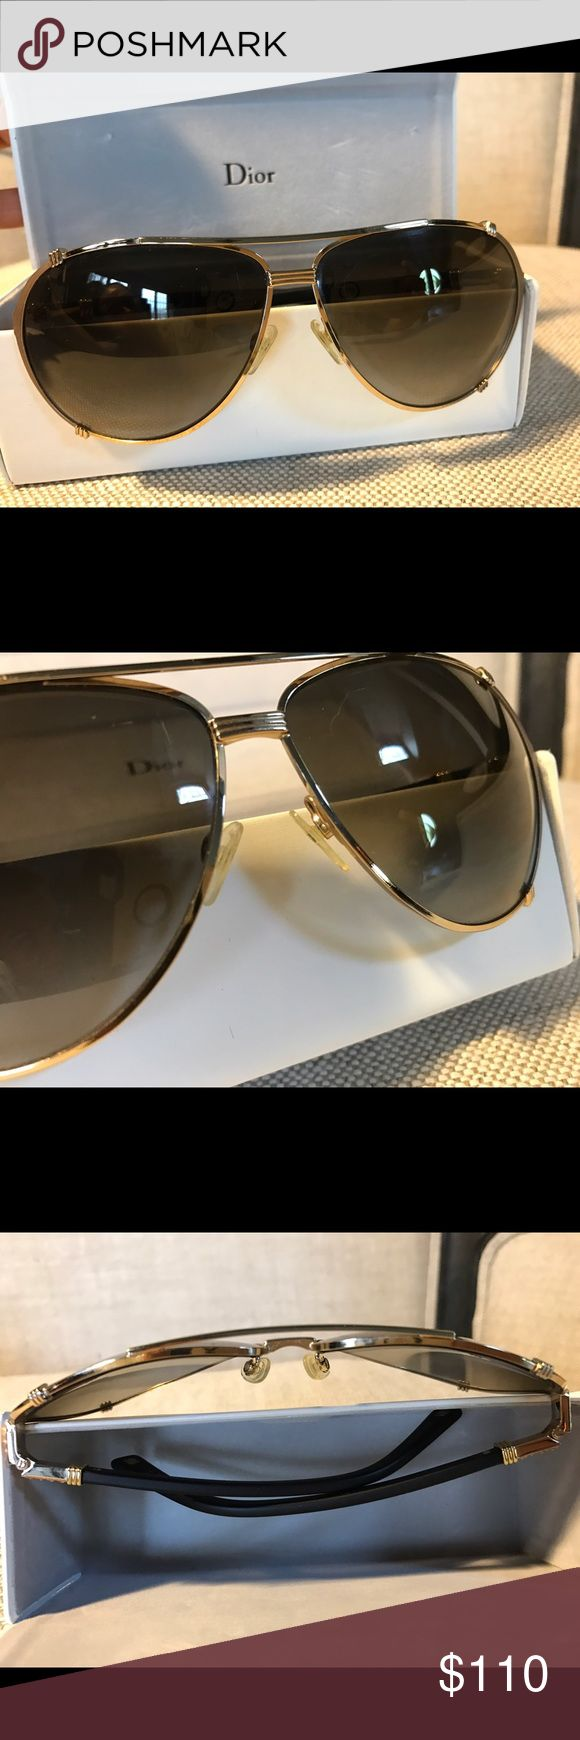 Christian Dior Sunglasses • Retail $375+ Purchased last summer • Tiny scratch on lens as seen on photo • if wanted, Dior can replace the lens for a minimal fee but the scratch is not noticeable unless you analyze... ALL items come from a smoke and pet free home. Non-realistic offers will be ignored. Some items may be for purchase only with no offers accepted. No trading. Happy shopping and thank you! Accessories Sunglasses